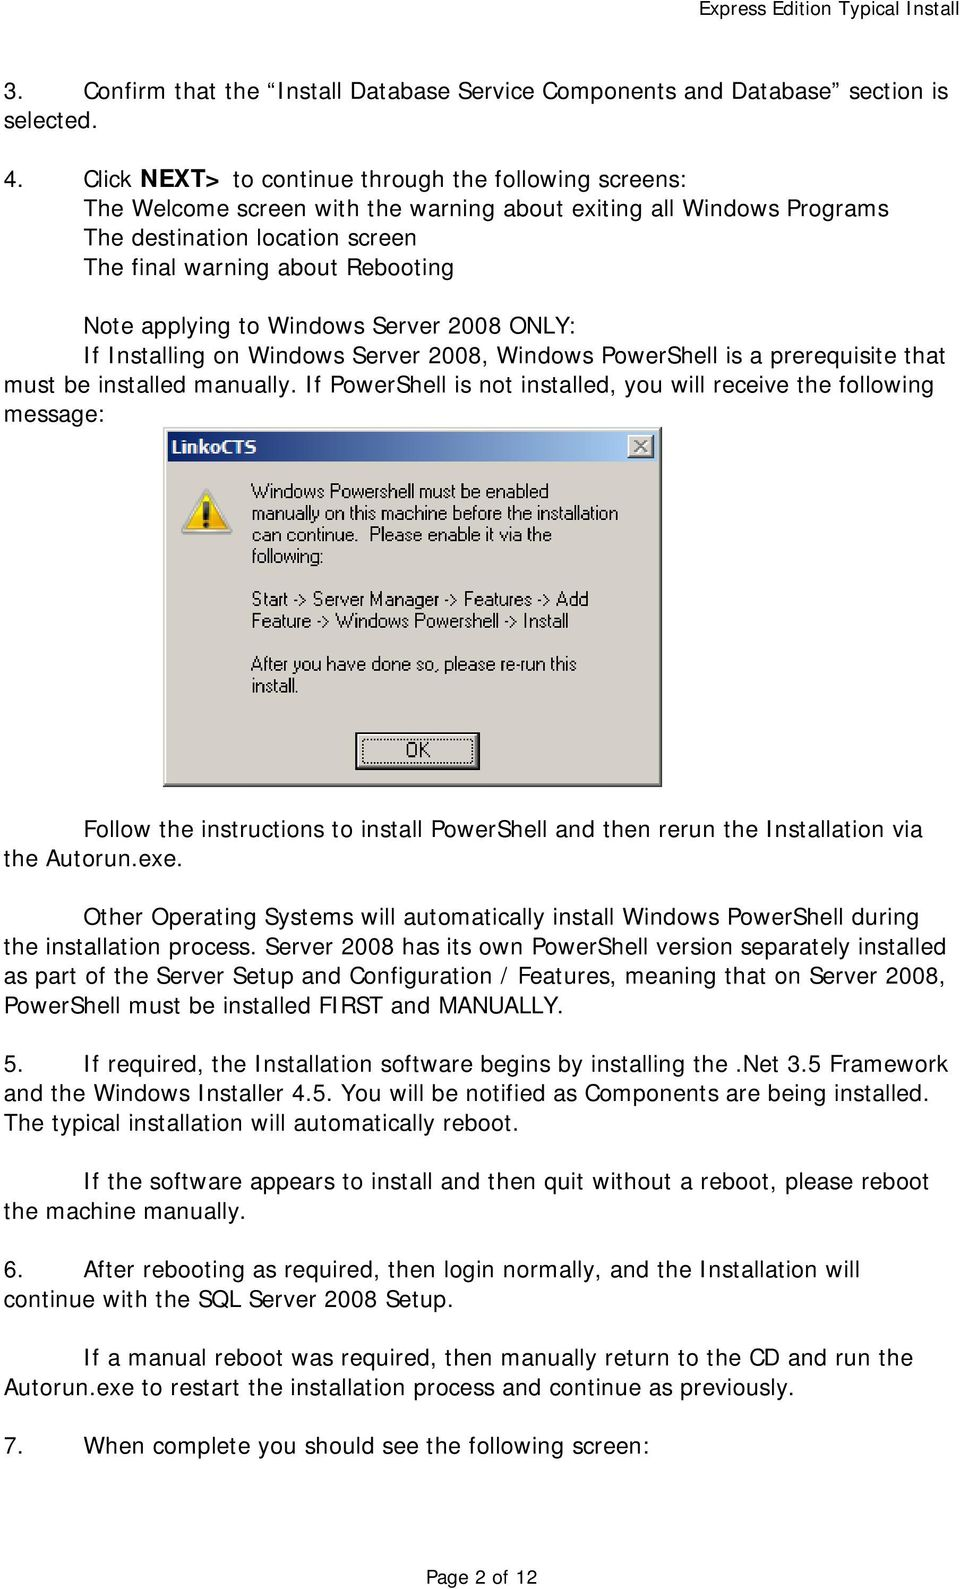 applying to Windows Server 2008 ONLY: If Installing on Windows Server 2008, Windows PowerShell is a prerequisite that must be installed manually.